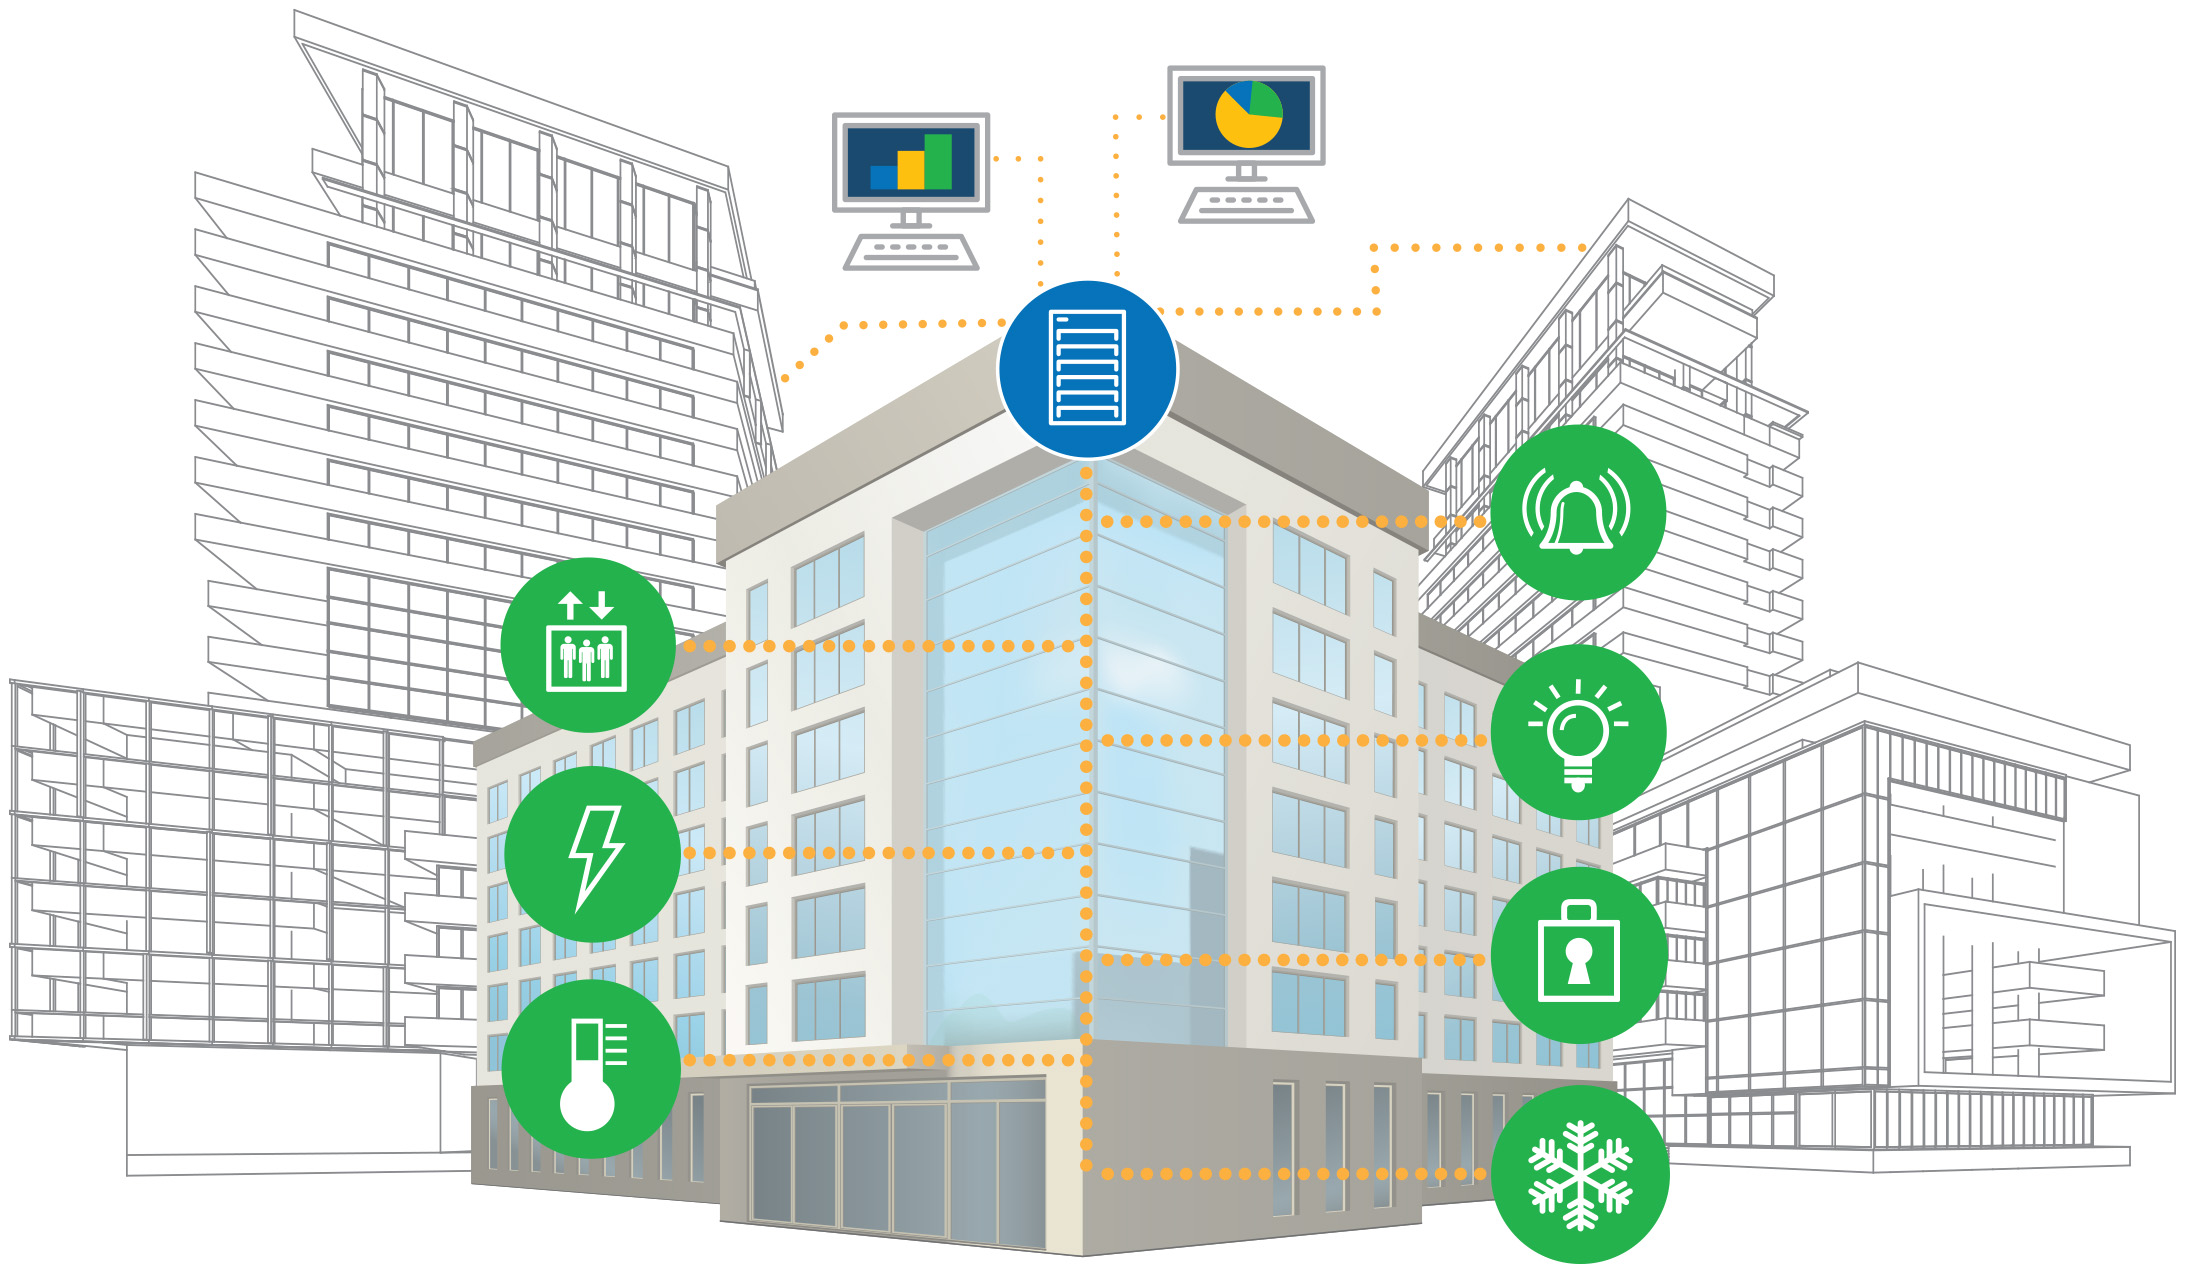 Bacnet Insute Offers Fms Course In Building Automation